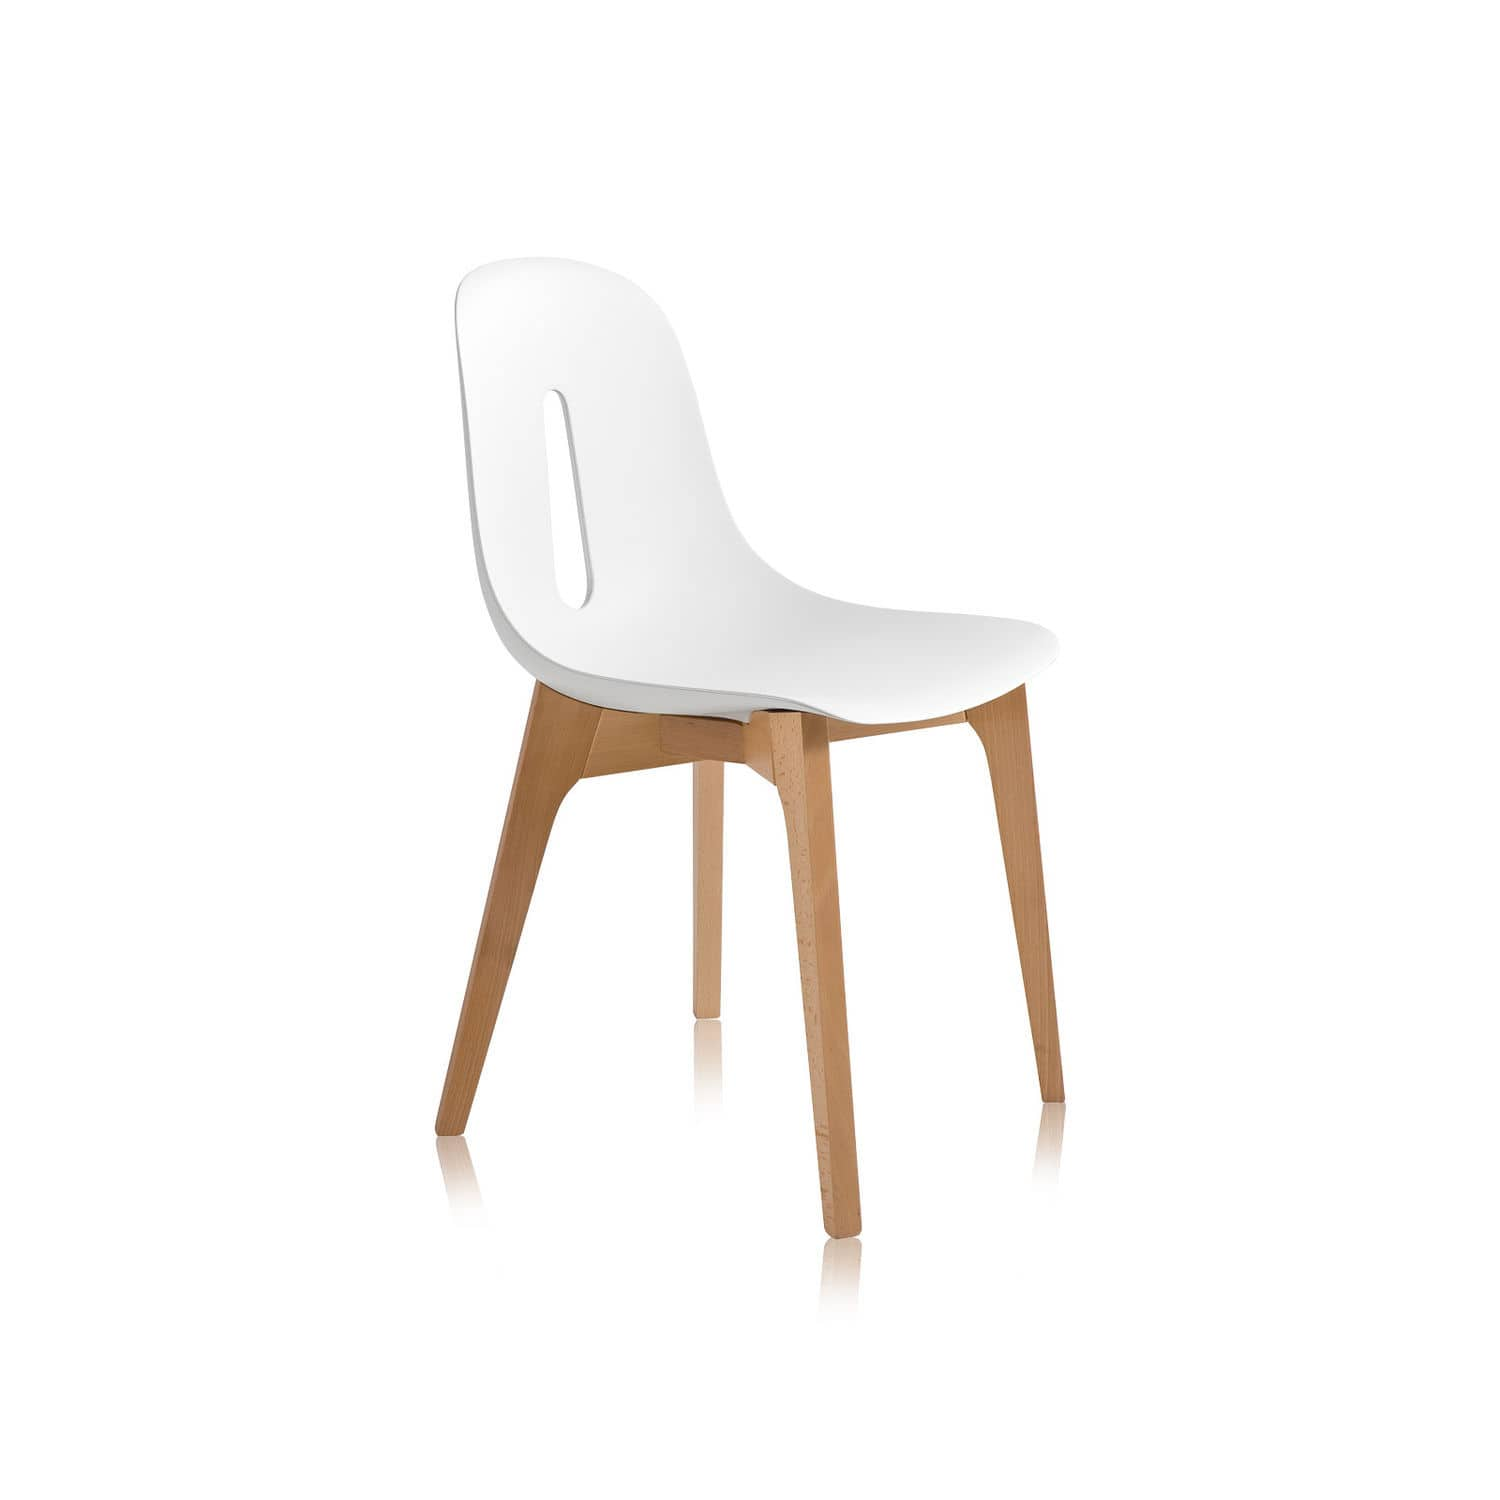 Contemporary Chair / Wooden / Polyurethane / Commercial   GOTHAM W By Dario  Delpin